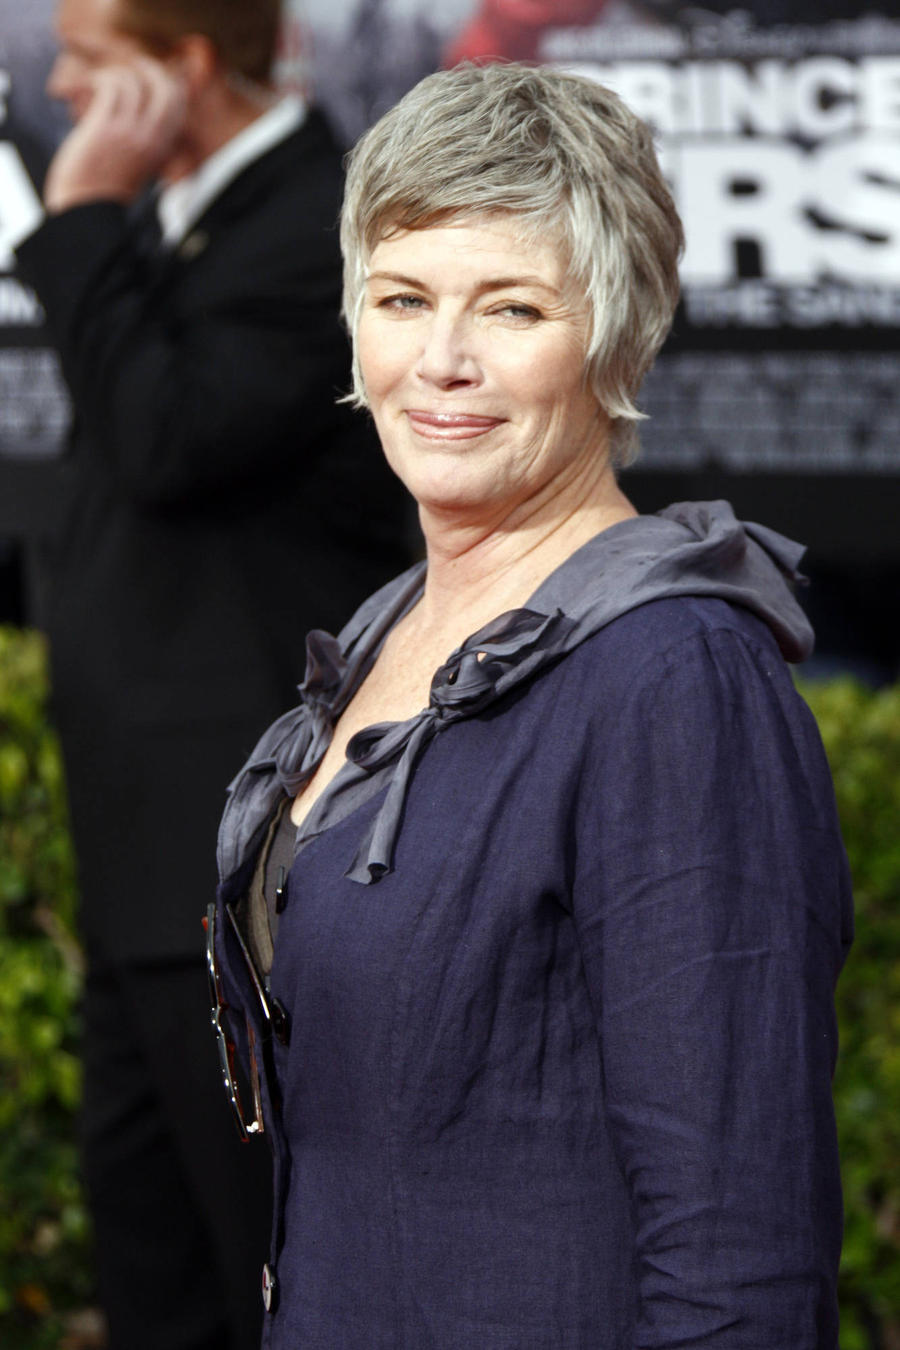 Kelly Mcgillis 'Armed And Ready' After Home Intruder Attack